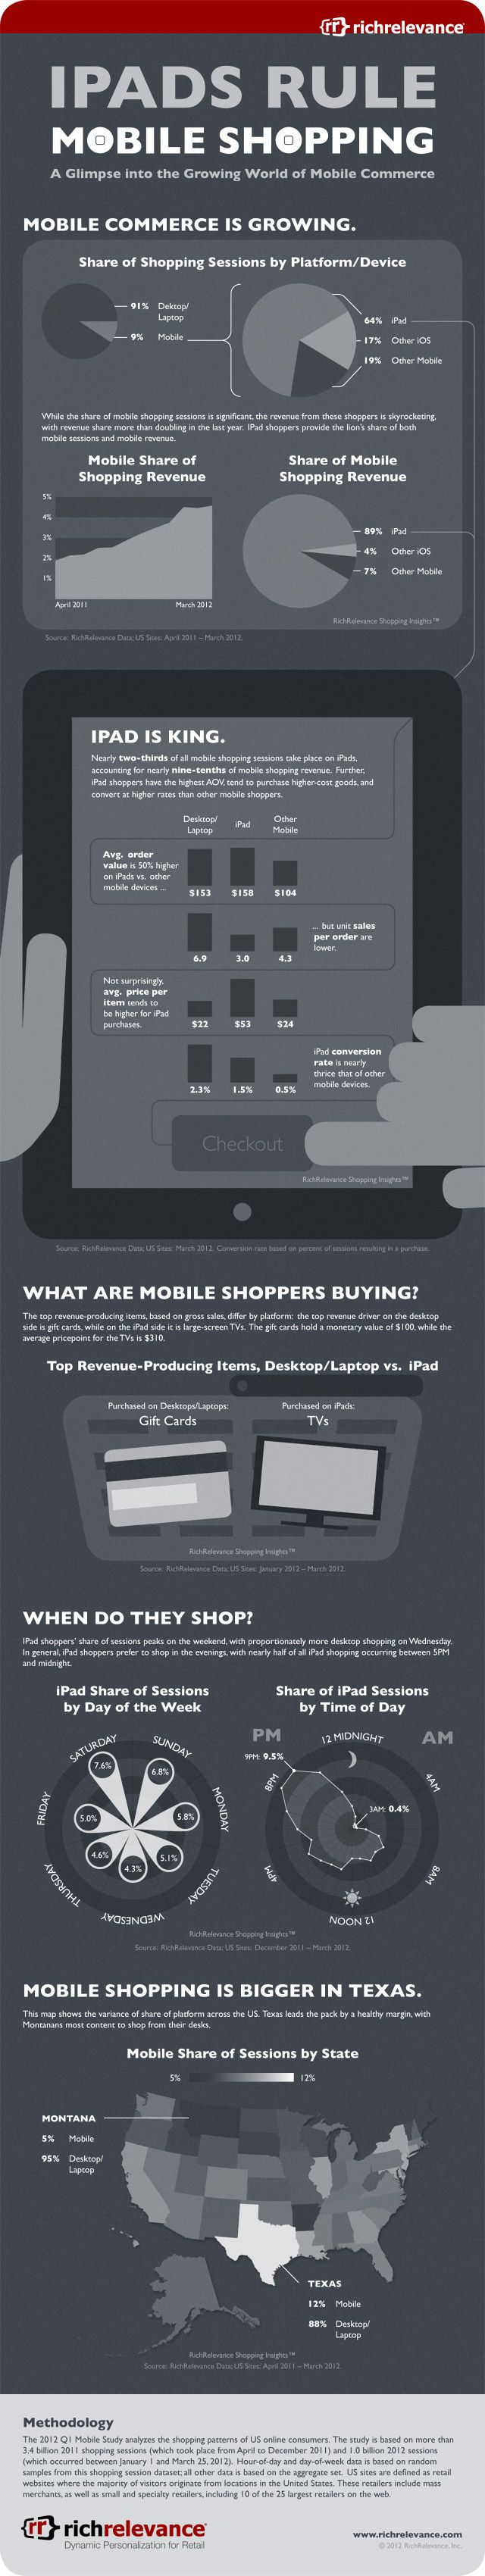 INFOGRAPHIC: New Study Lends Insight Into Shopping Habits of Tablet UsersMobiles Shops, Ipad Rules, Rules Mshop, Rules Mobiles, Social Media, Shops Infographic, Info Graphics, Mobile Commerce, Marketing Infographic